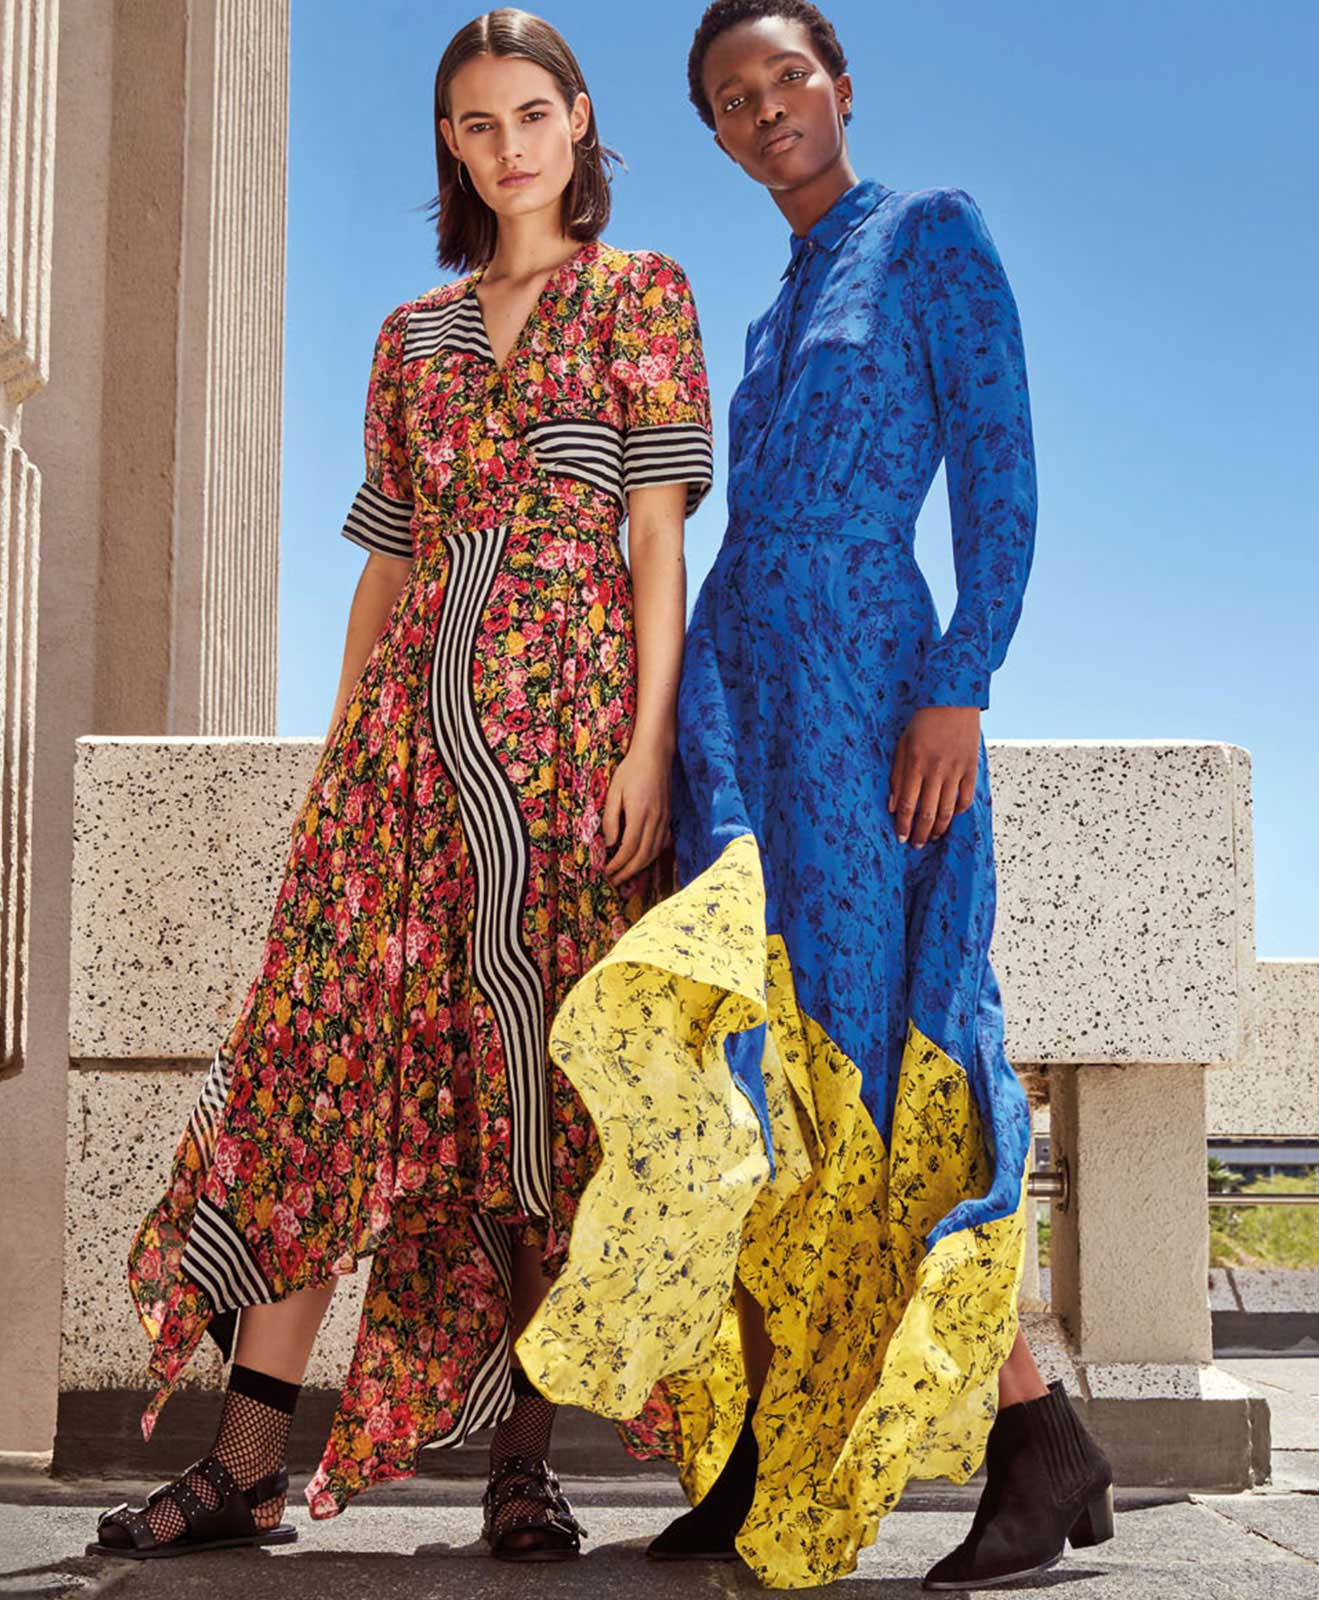 8a6d59c3be7a DRAMATIC LENGTHS Floor-skimming lengths + bold clashing prints = the  summer's most striking dresses.